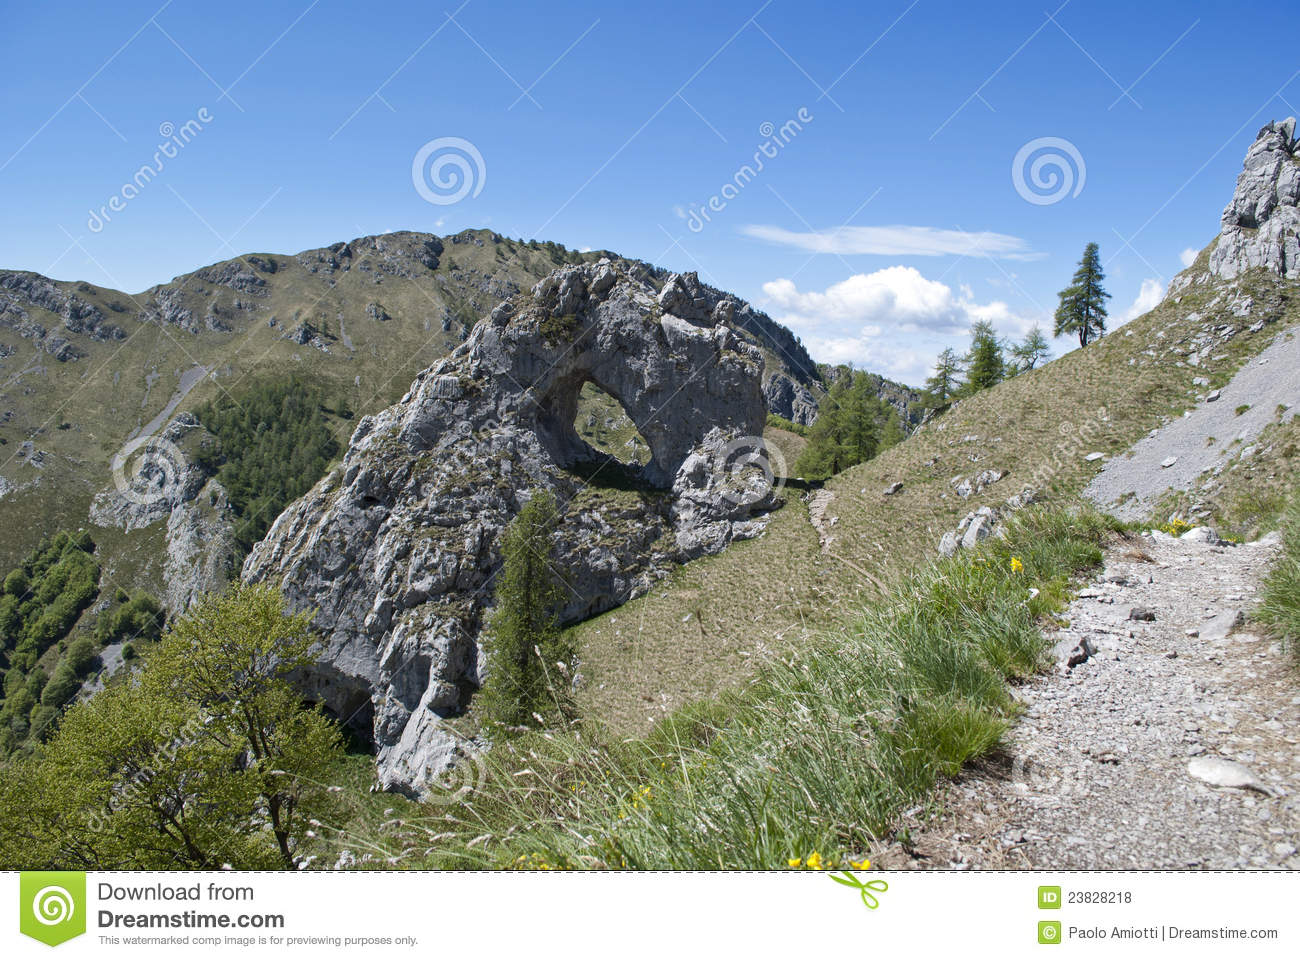 Porta di prada royalty free stock photos image 23828218 - Porta di prada ...